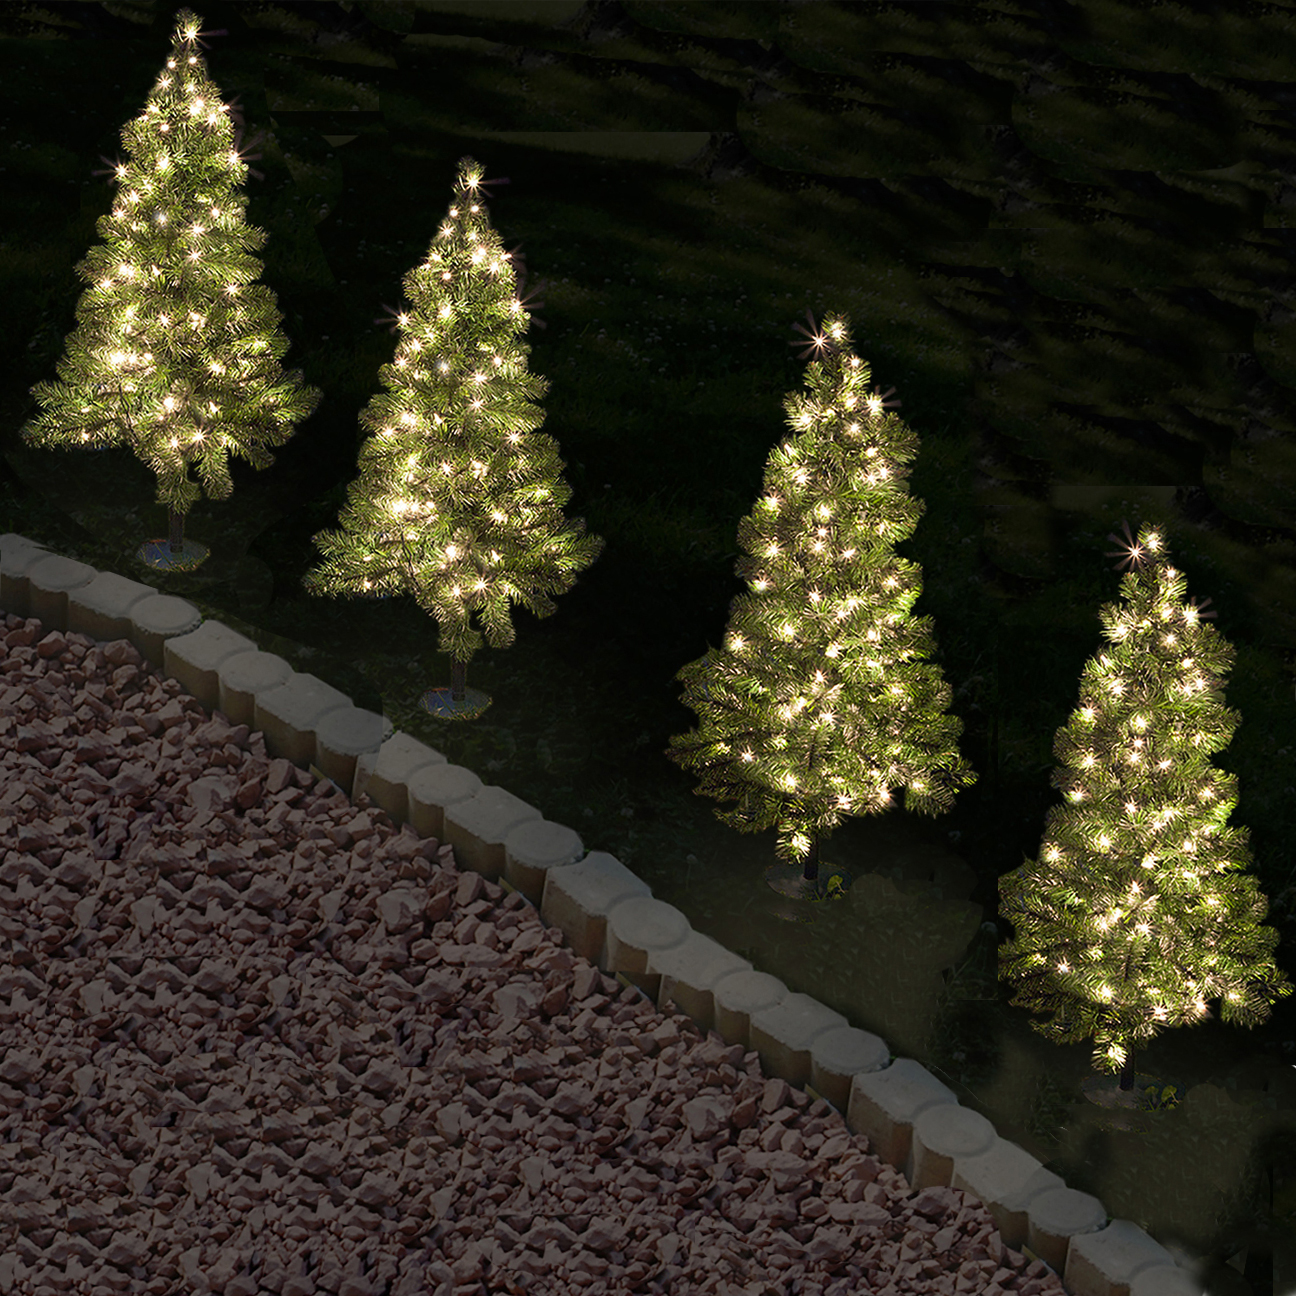 2 Ft White Christmas Tree: 3 Ft Tall Christmas Pathway Tree With 70 Warm White LED